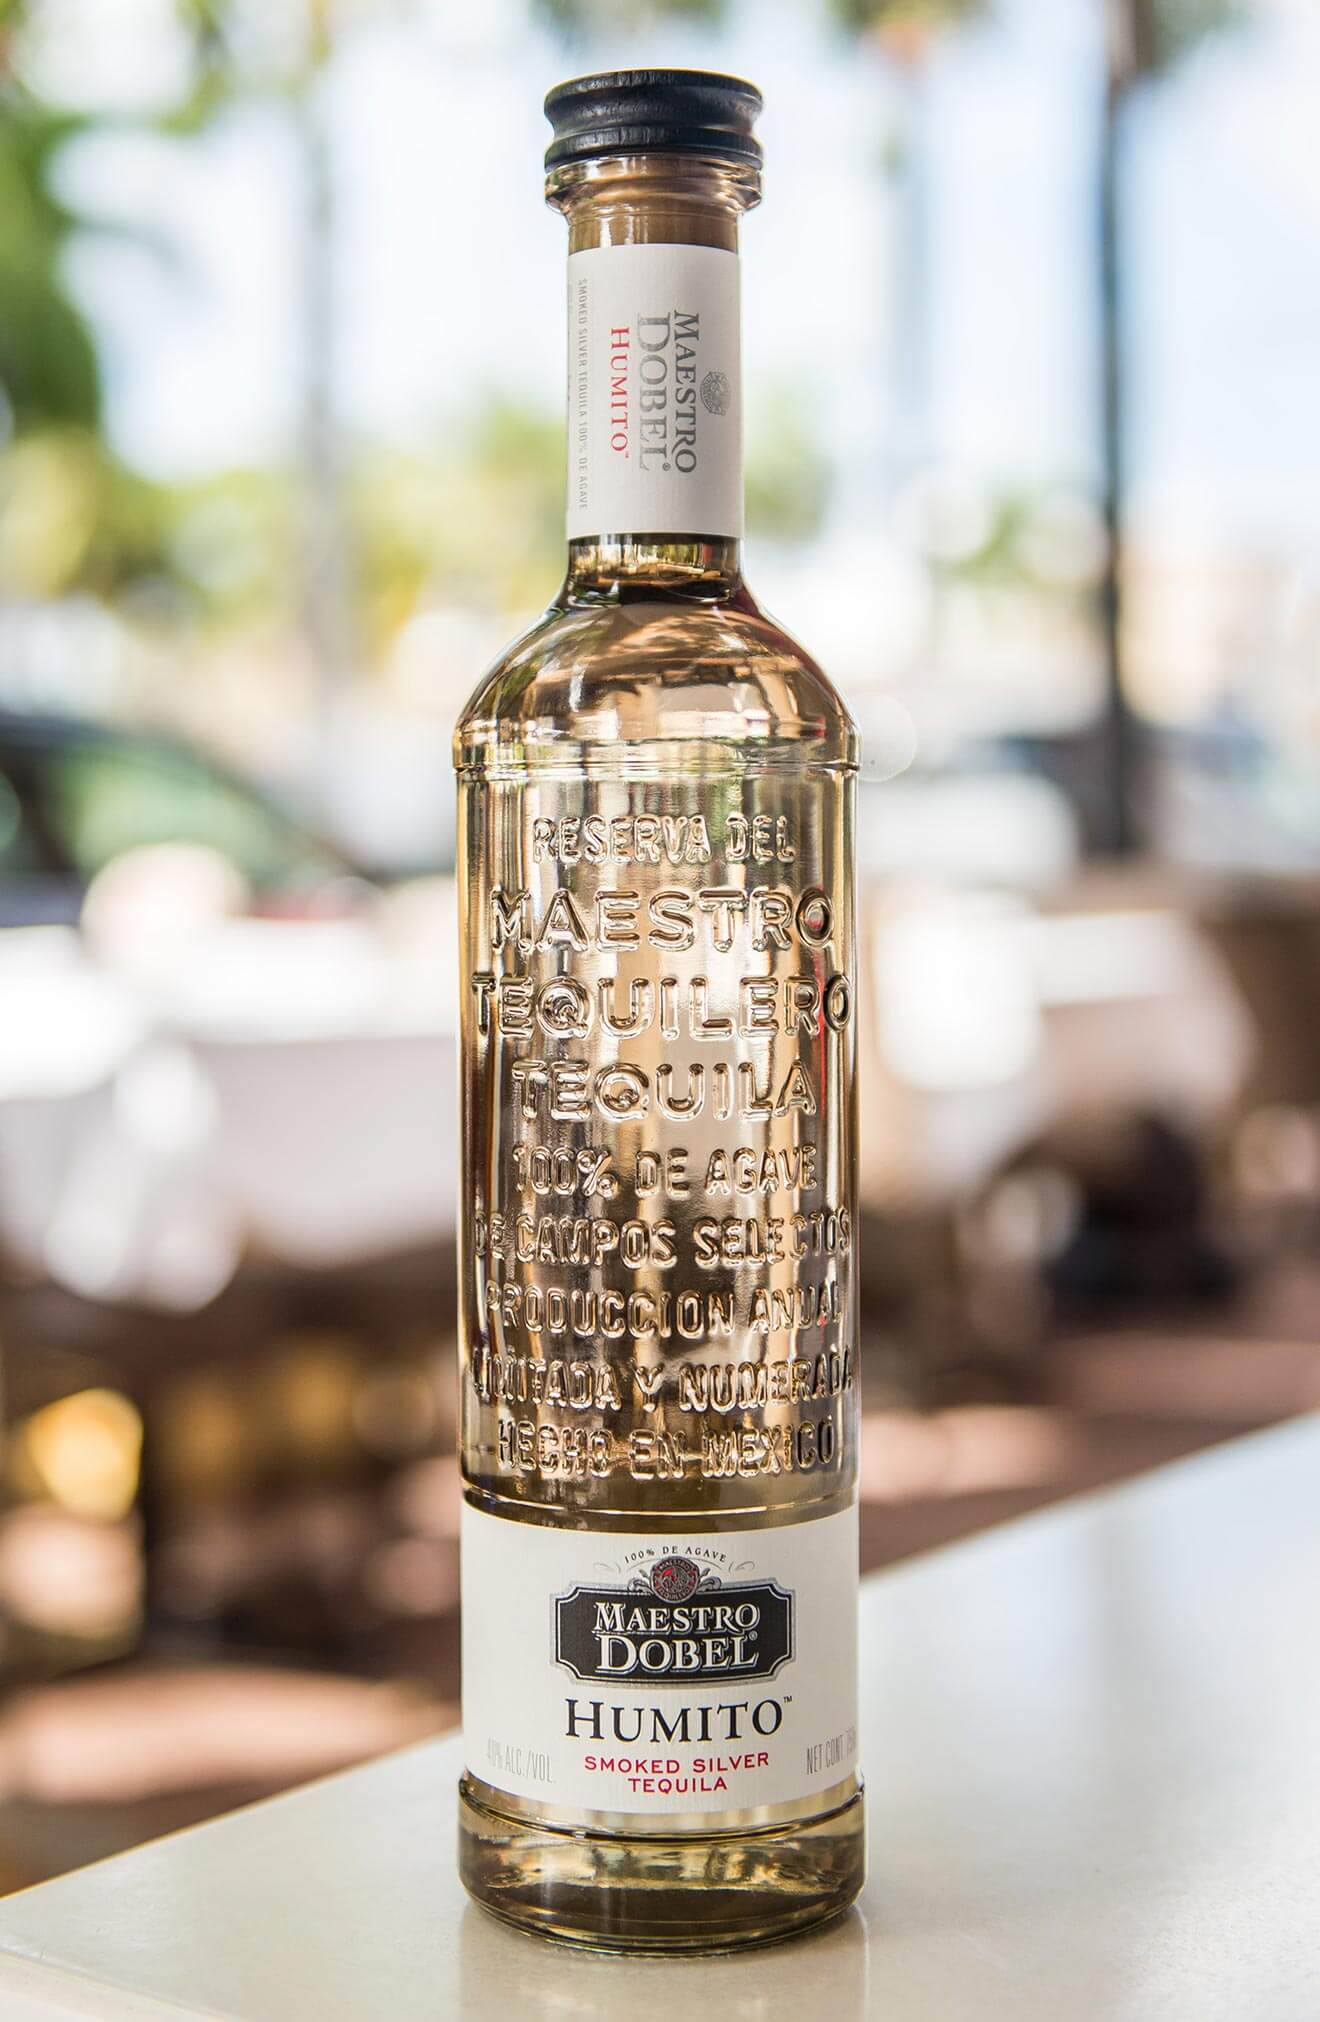 Humito, The World's First Smoked Silver Tequila from Maestro Dobel Tequila, featured brands